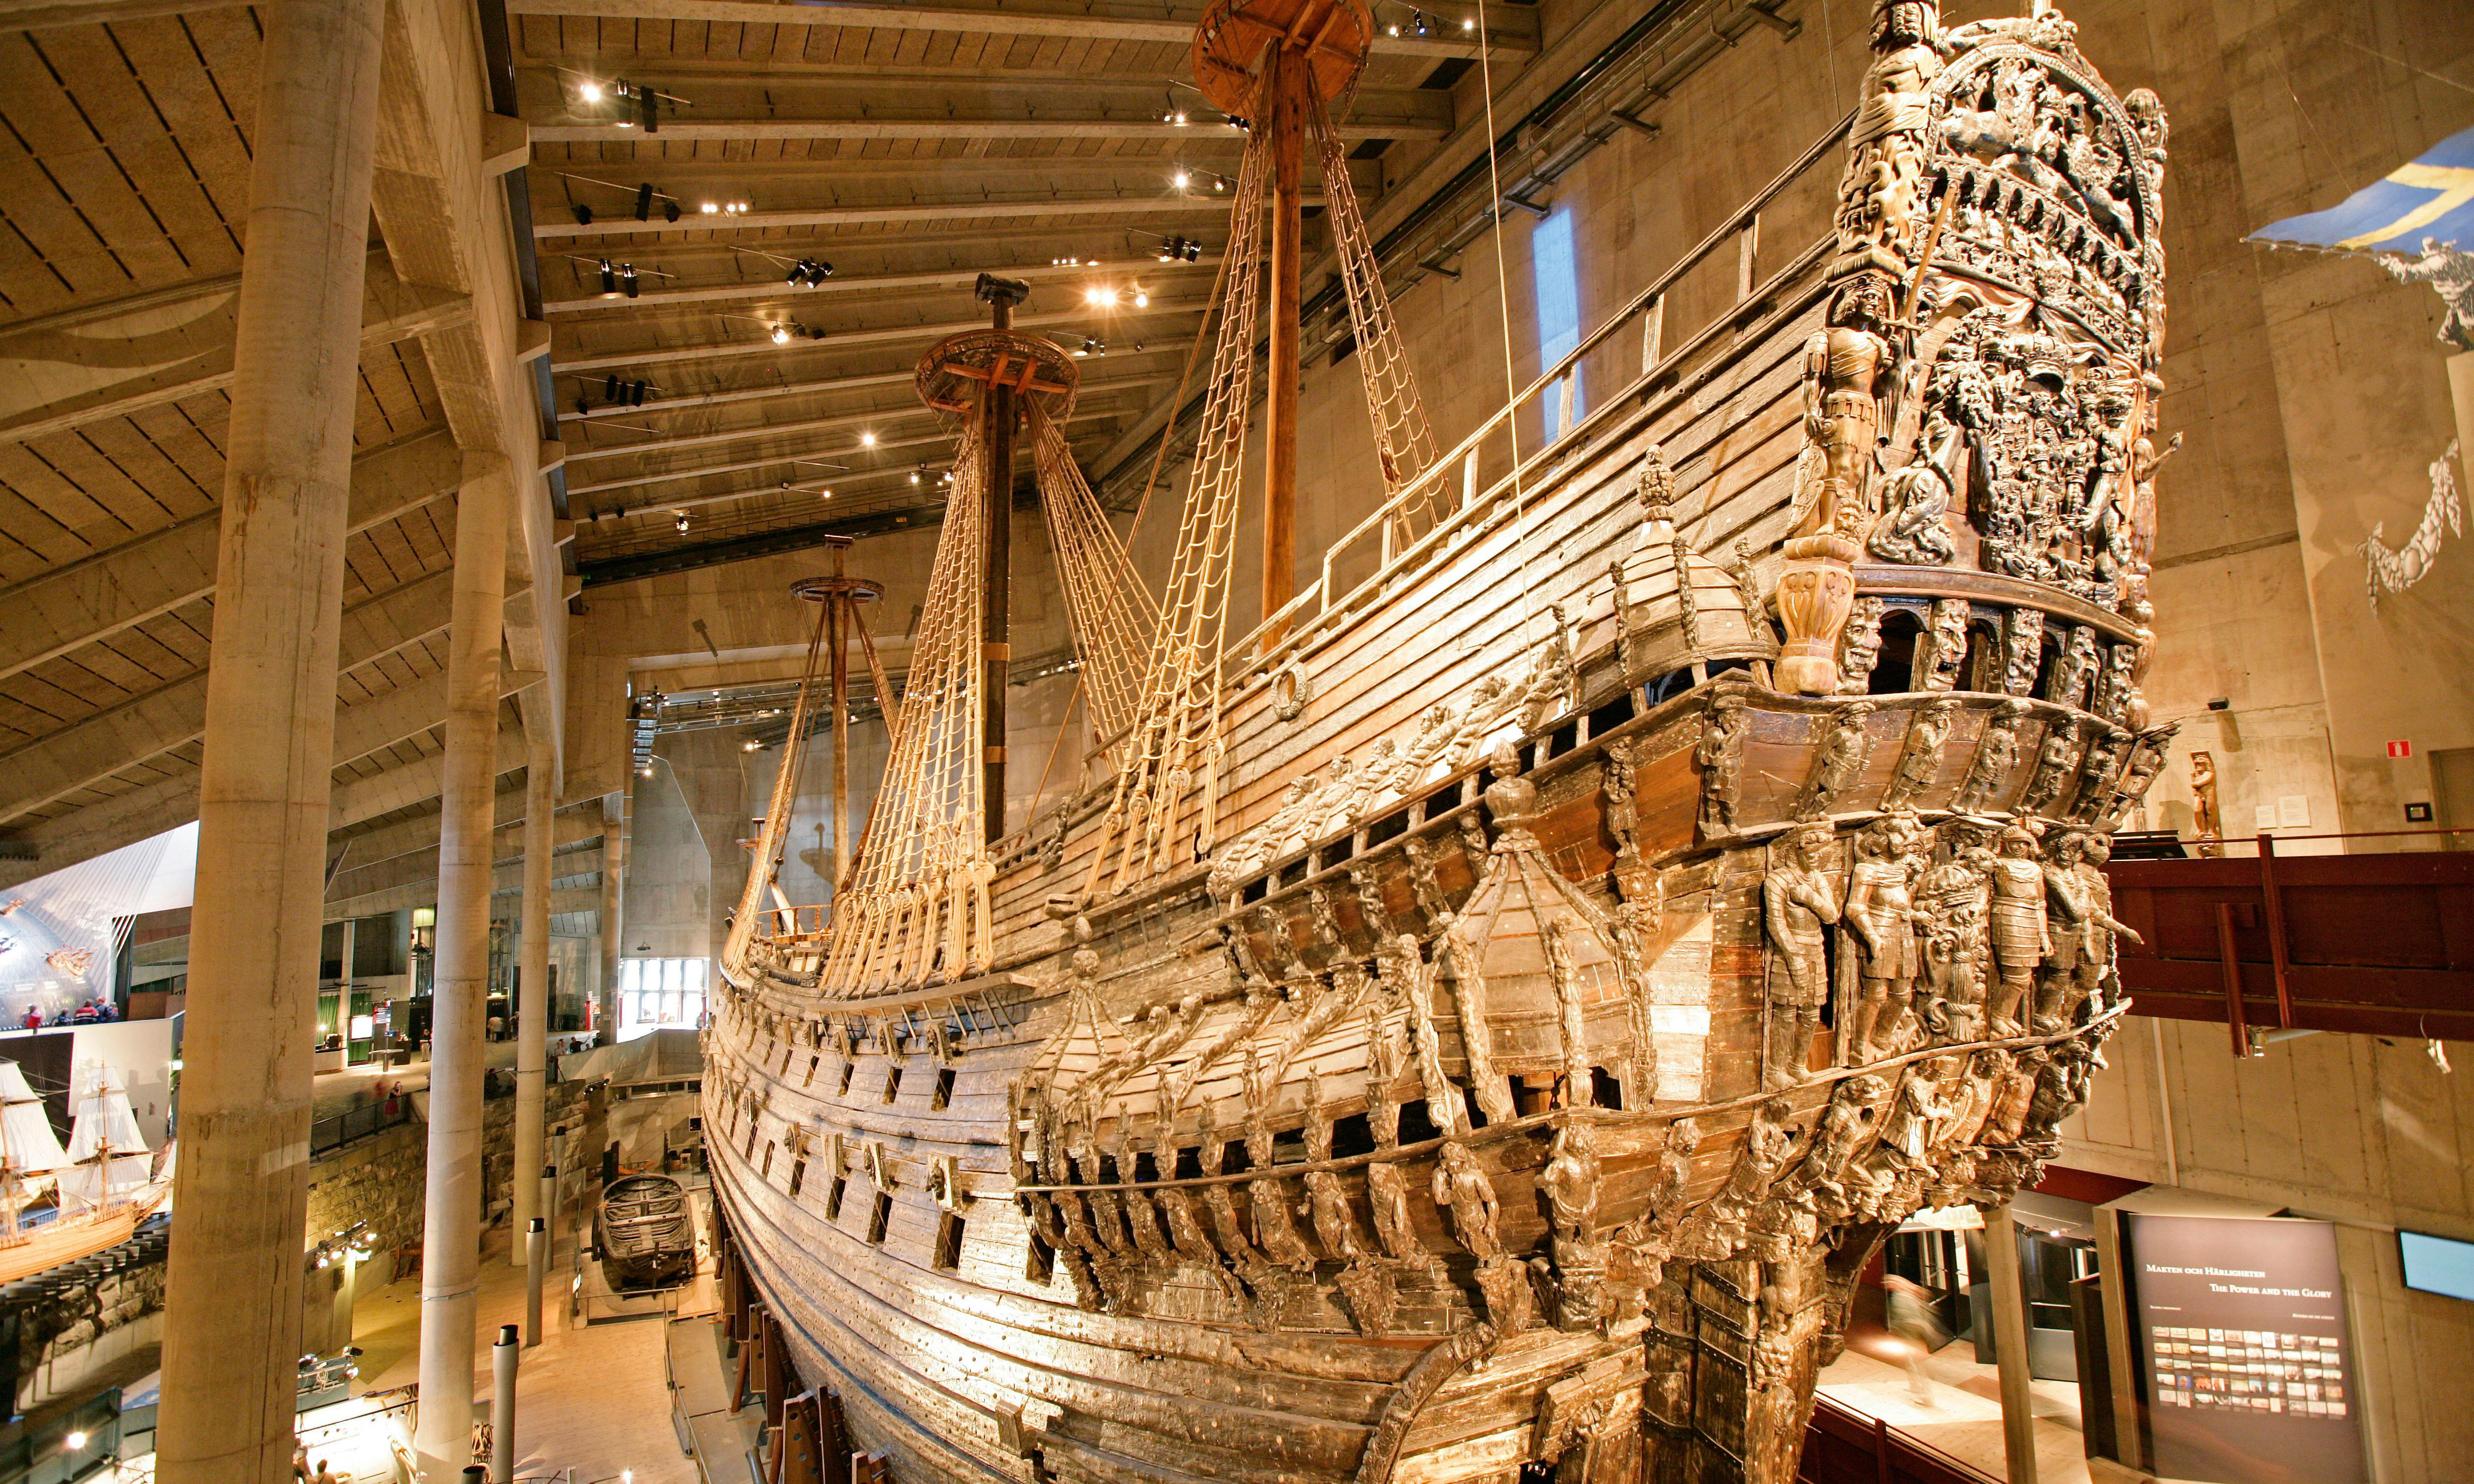 17th century warships linked to Sweden's historic Vasa found